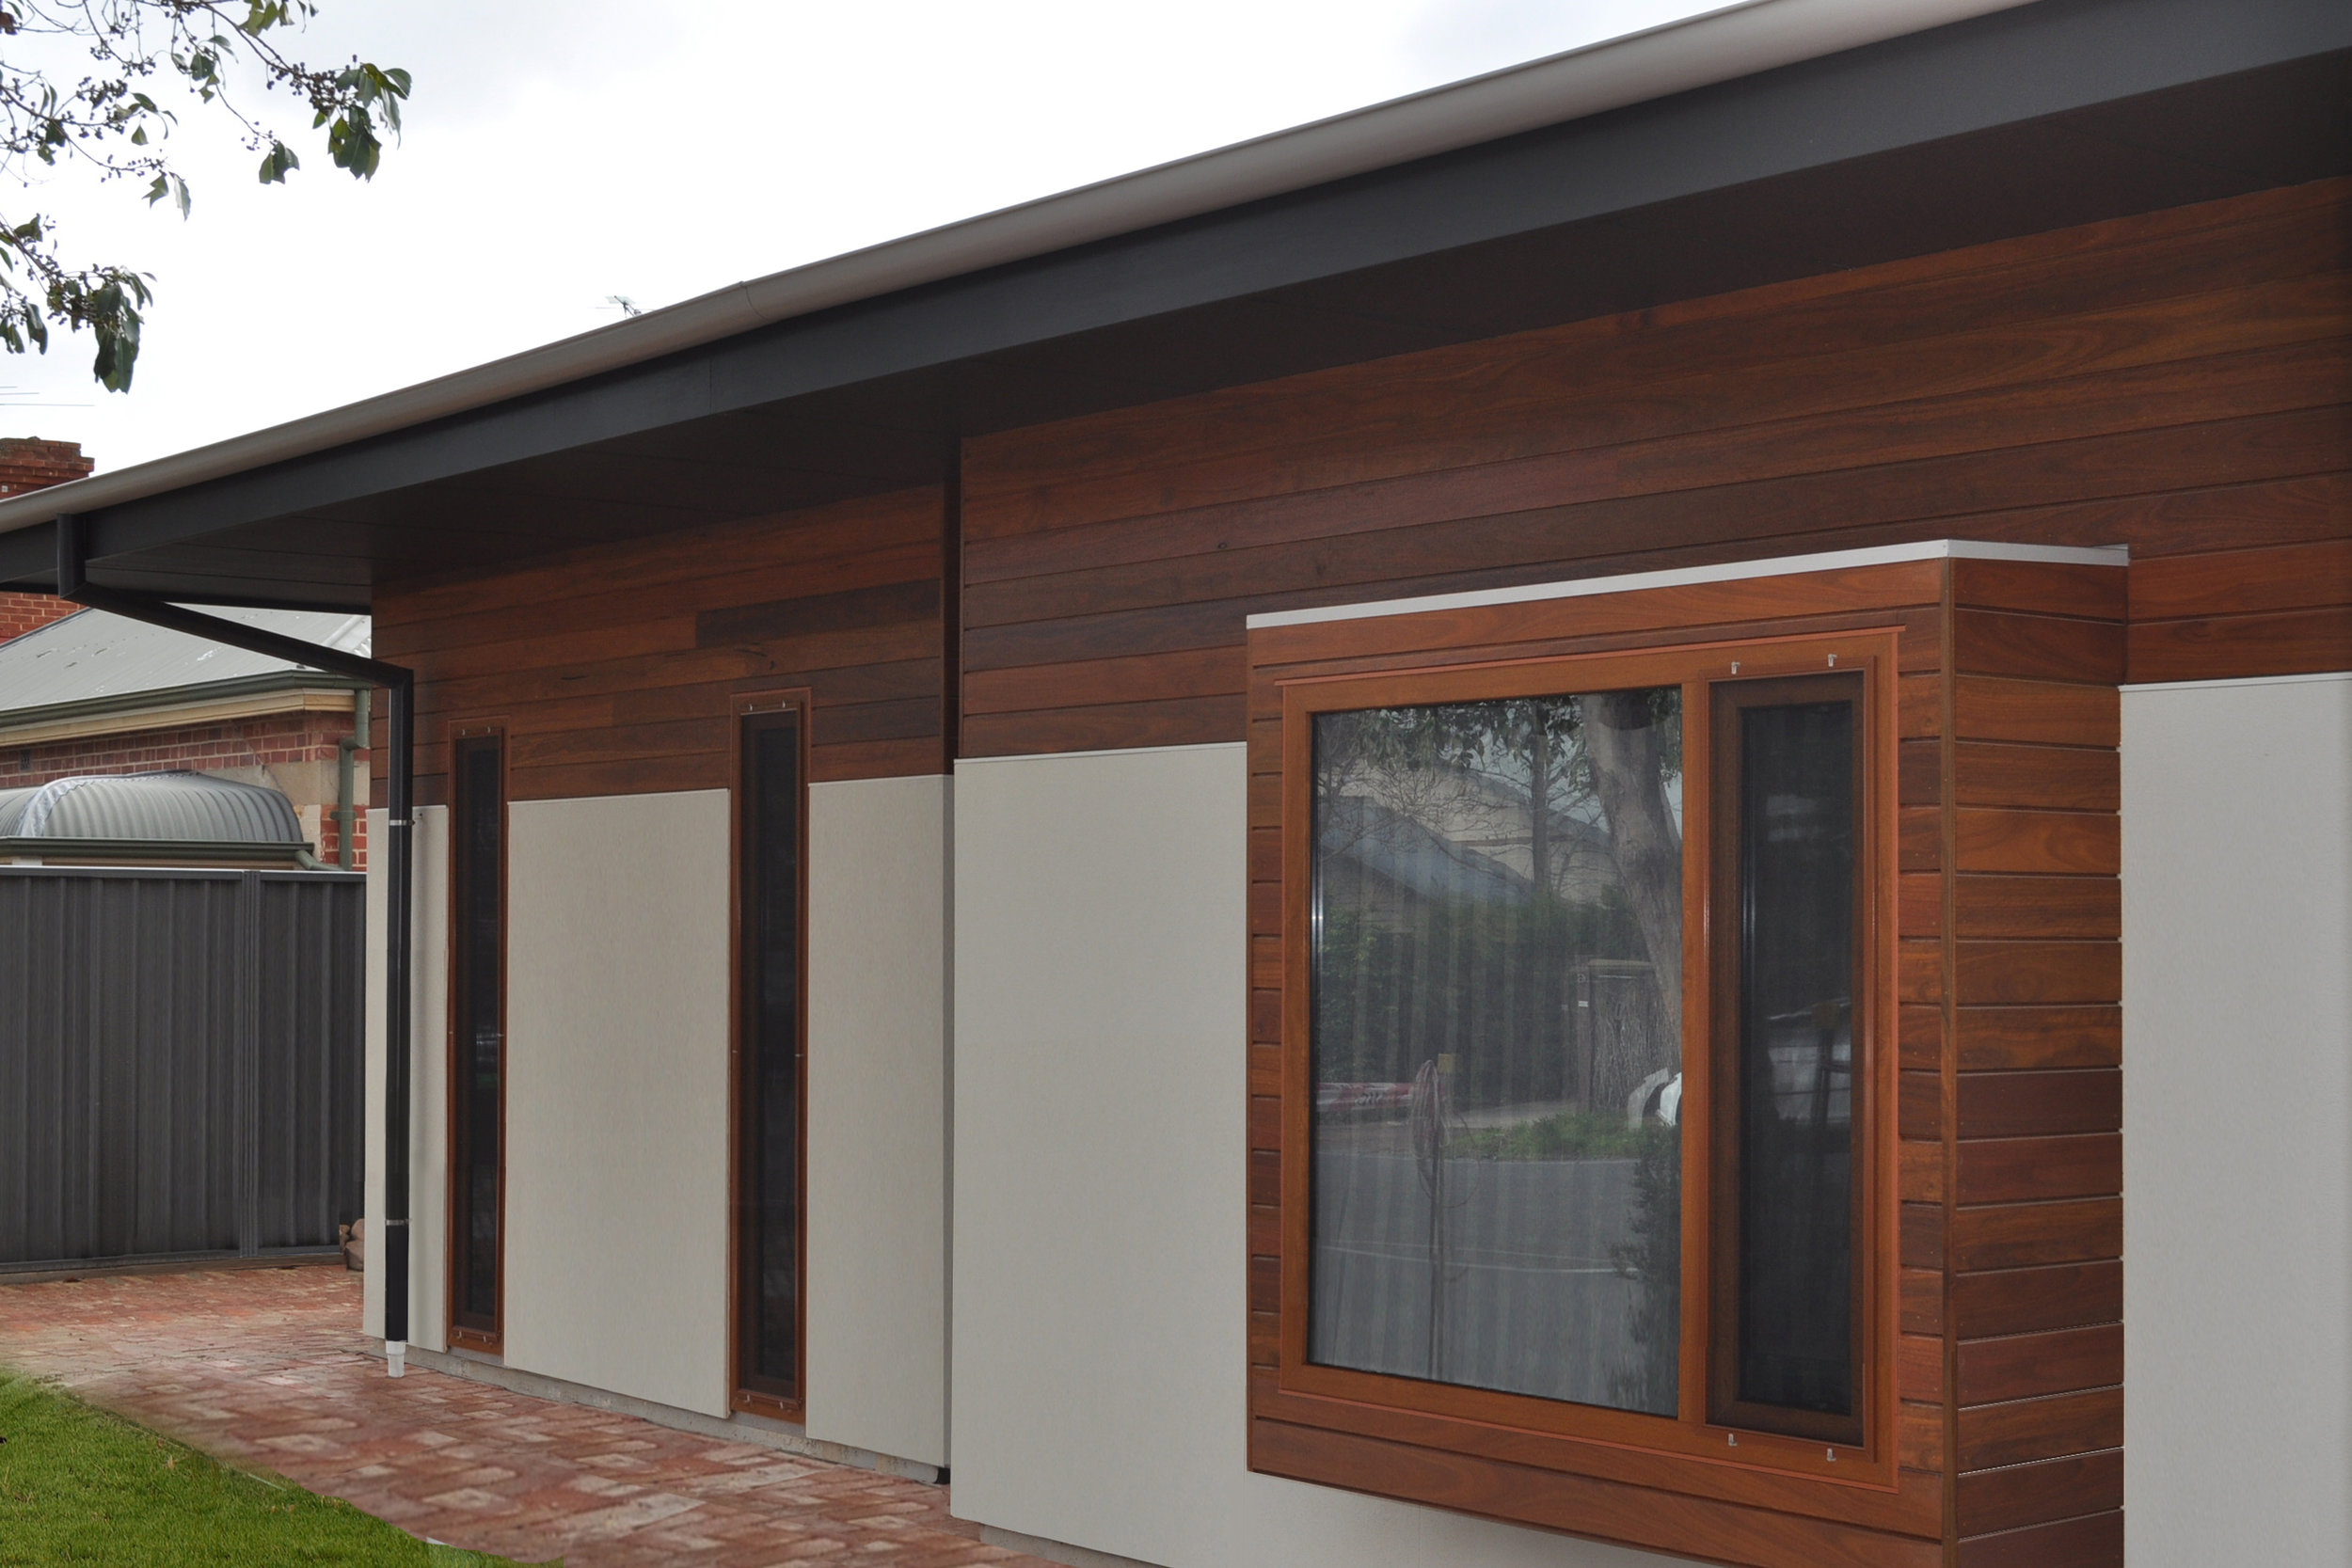 Leabrook 2 ext front window 003.jpg